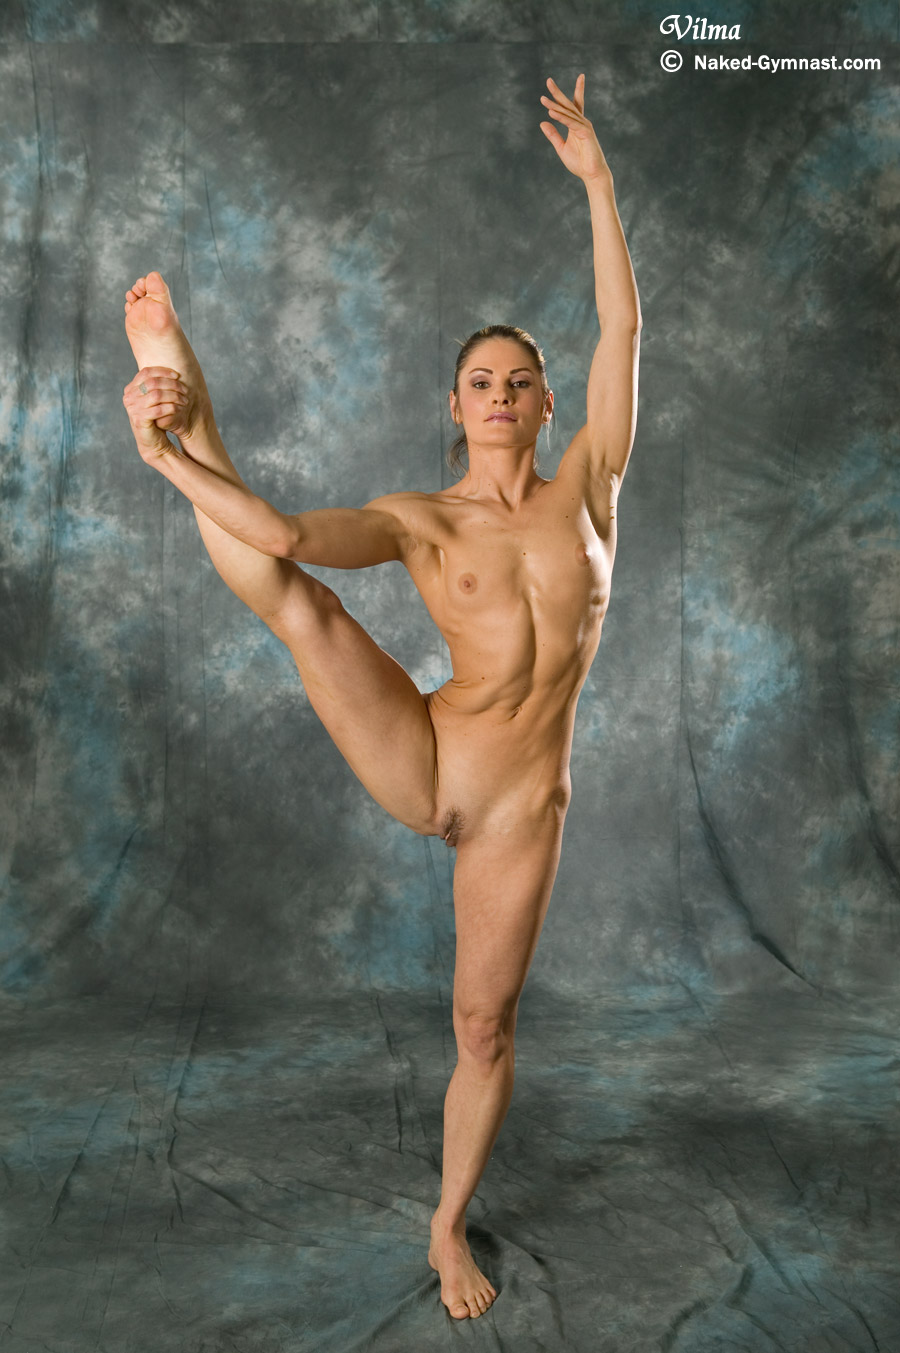 Naked Fleible Gymnasts Workouts